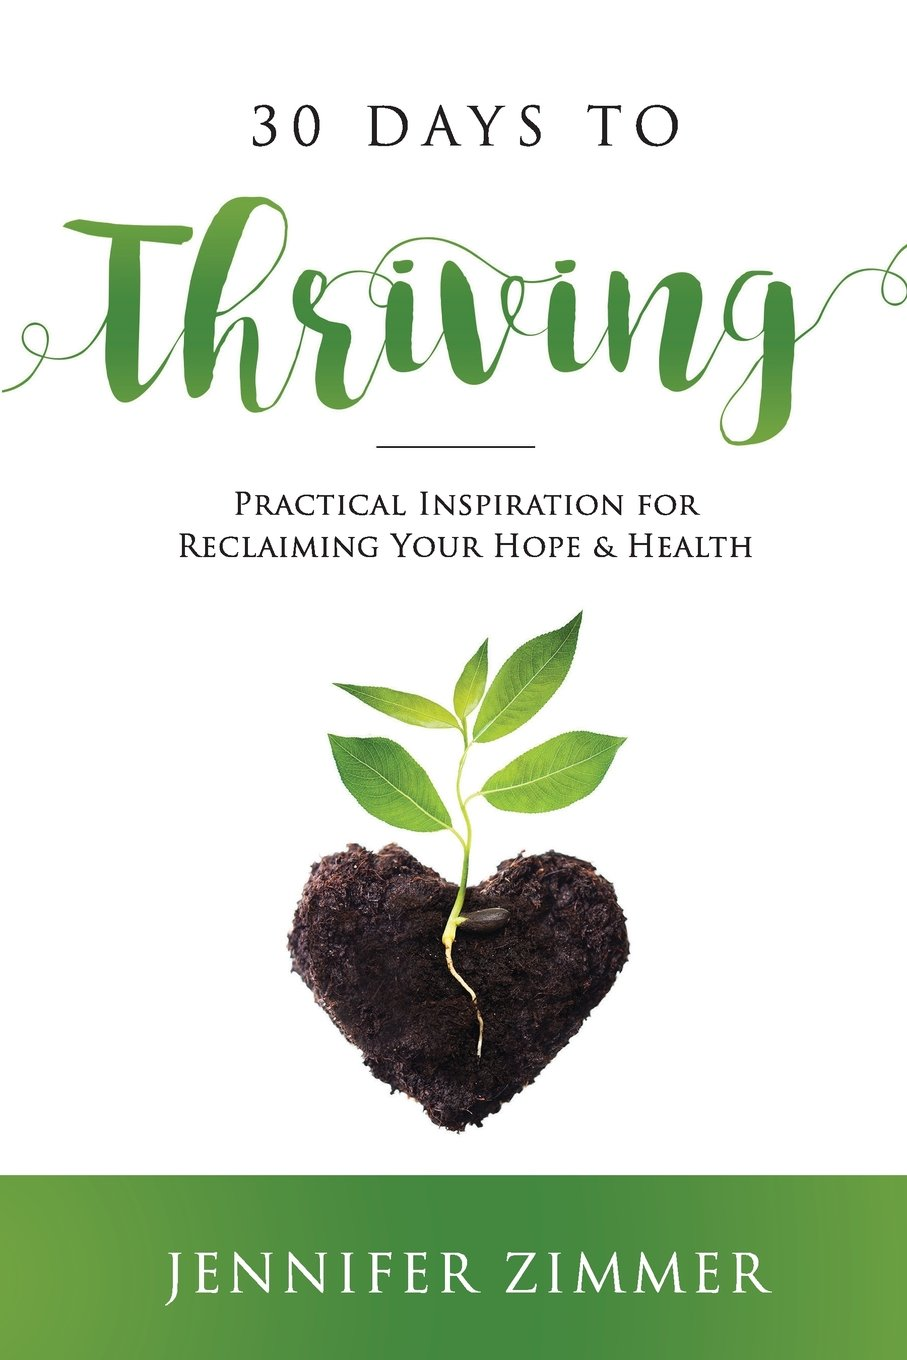 30 Days to Thriving: Practical Inspiration for Reclaiming Your Hope & Health PDF